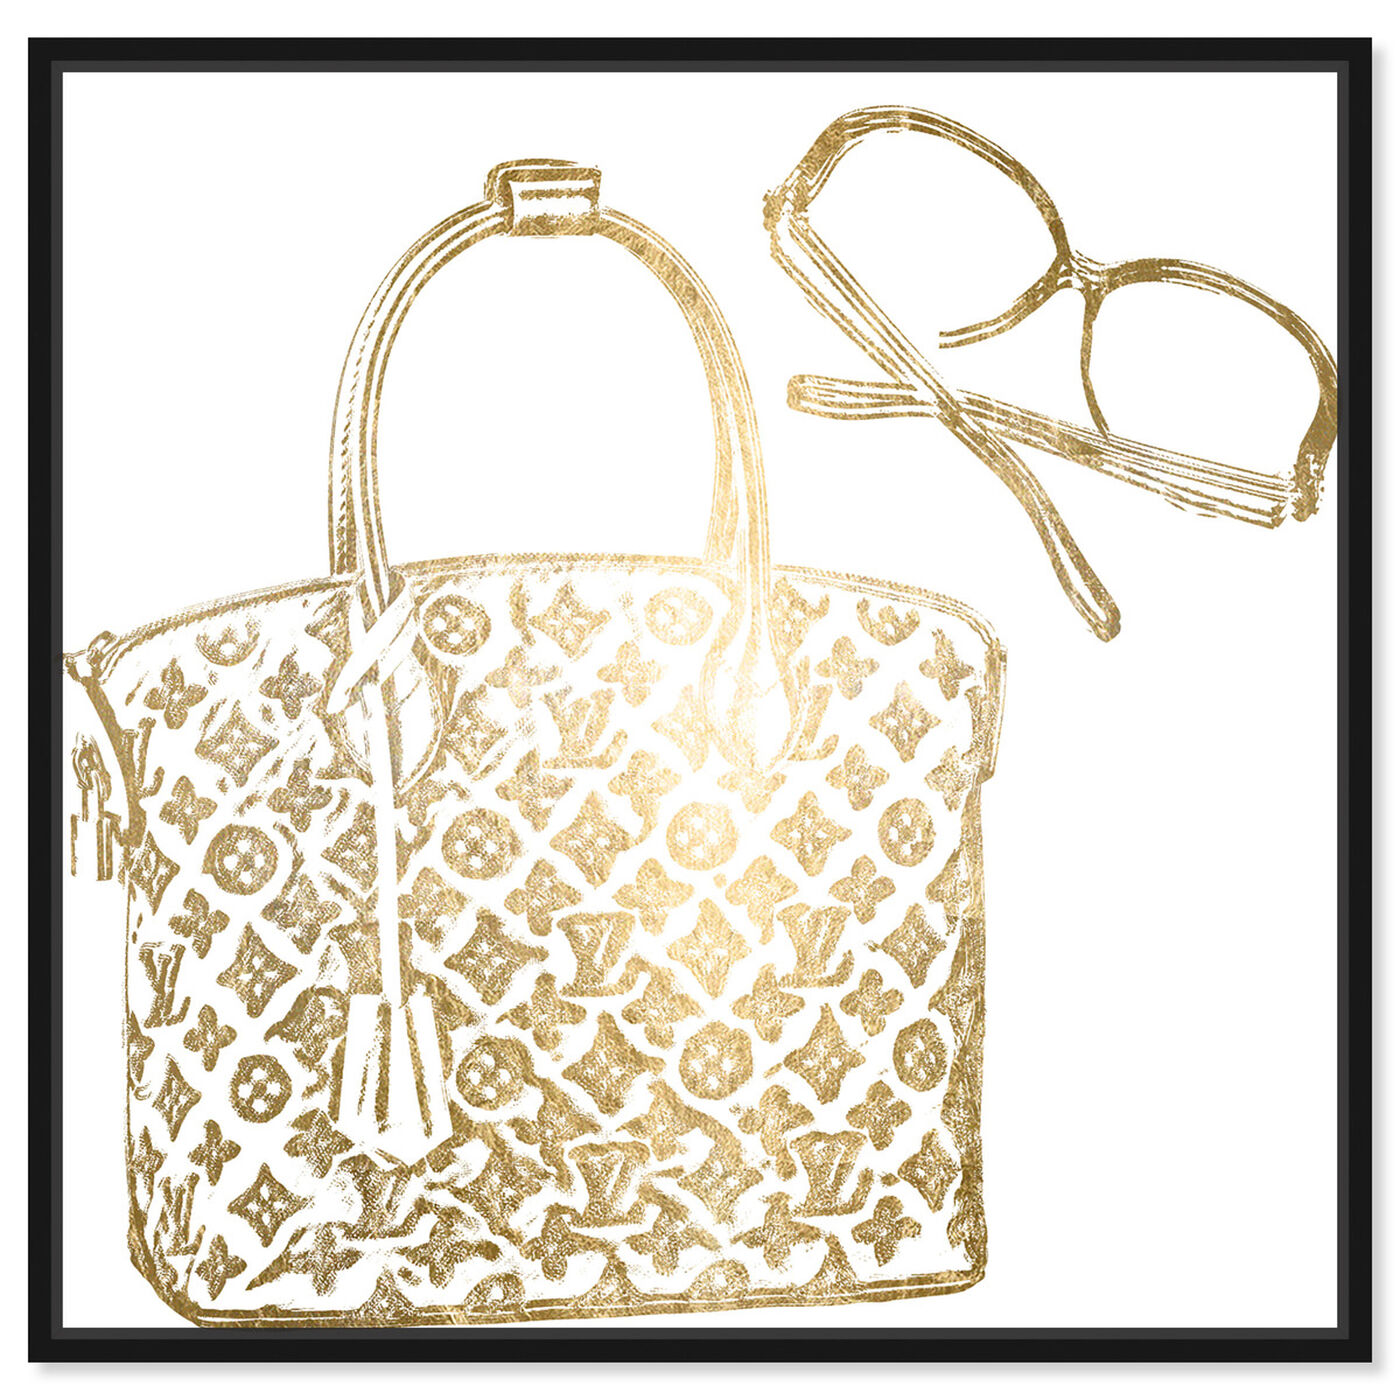 Front view of Luxe Musts Gold Foil featuring fashion and glam and handbags art.